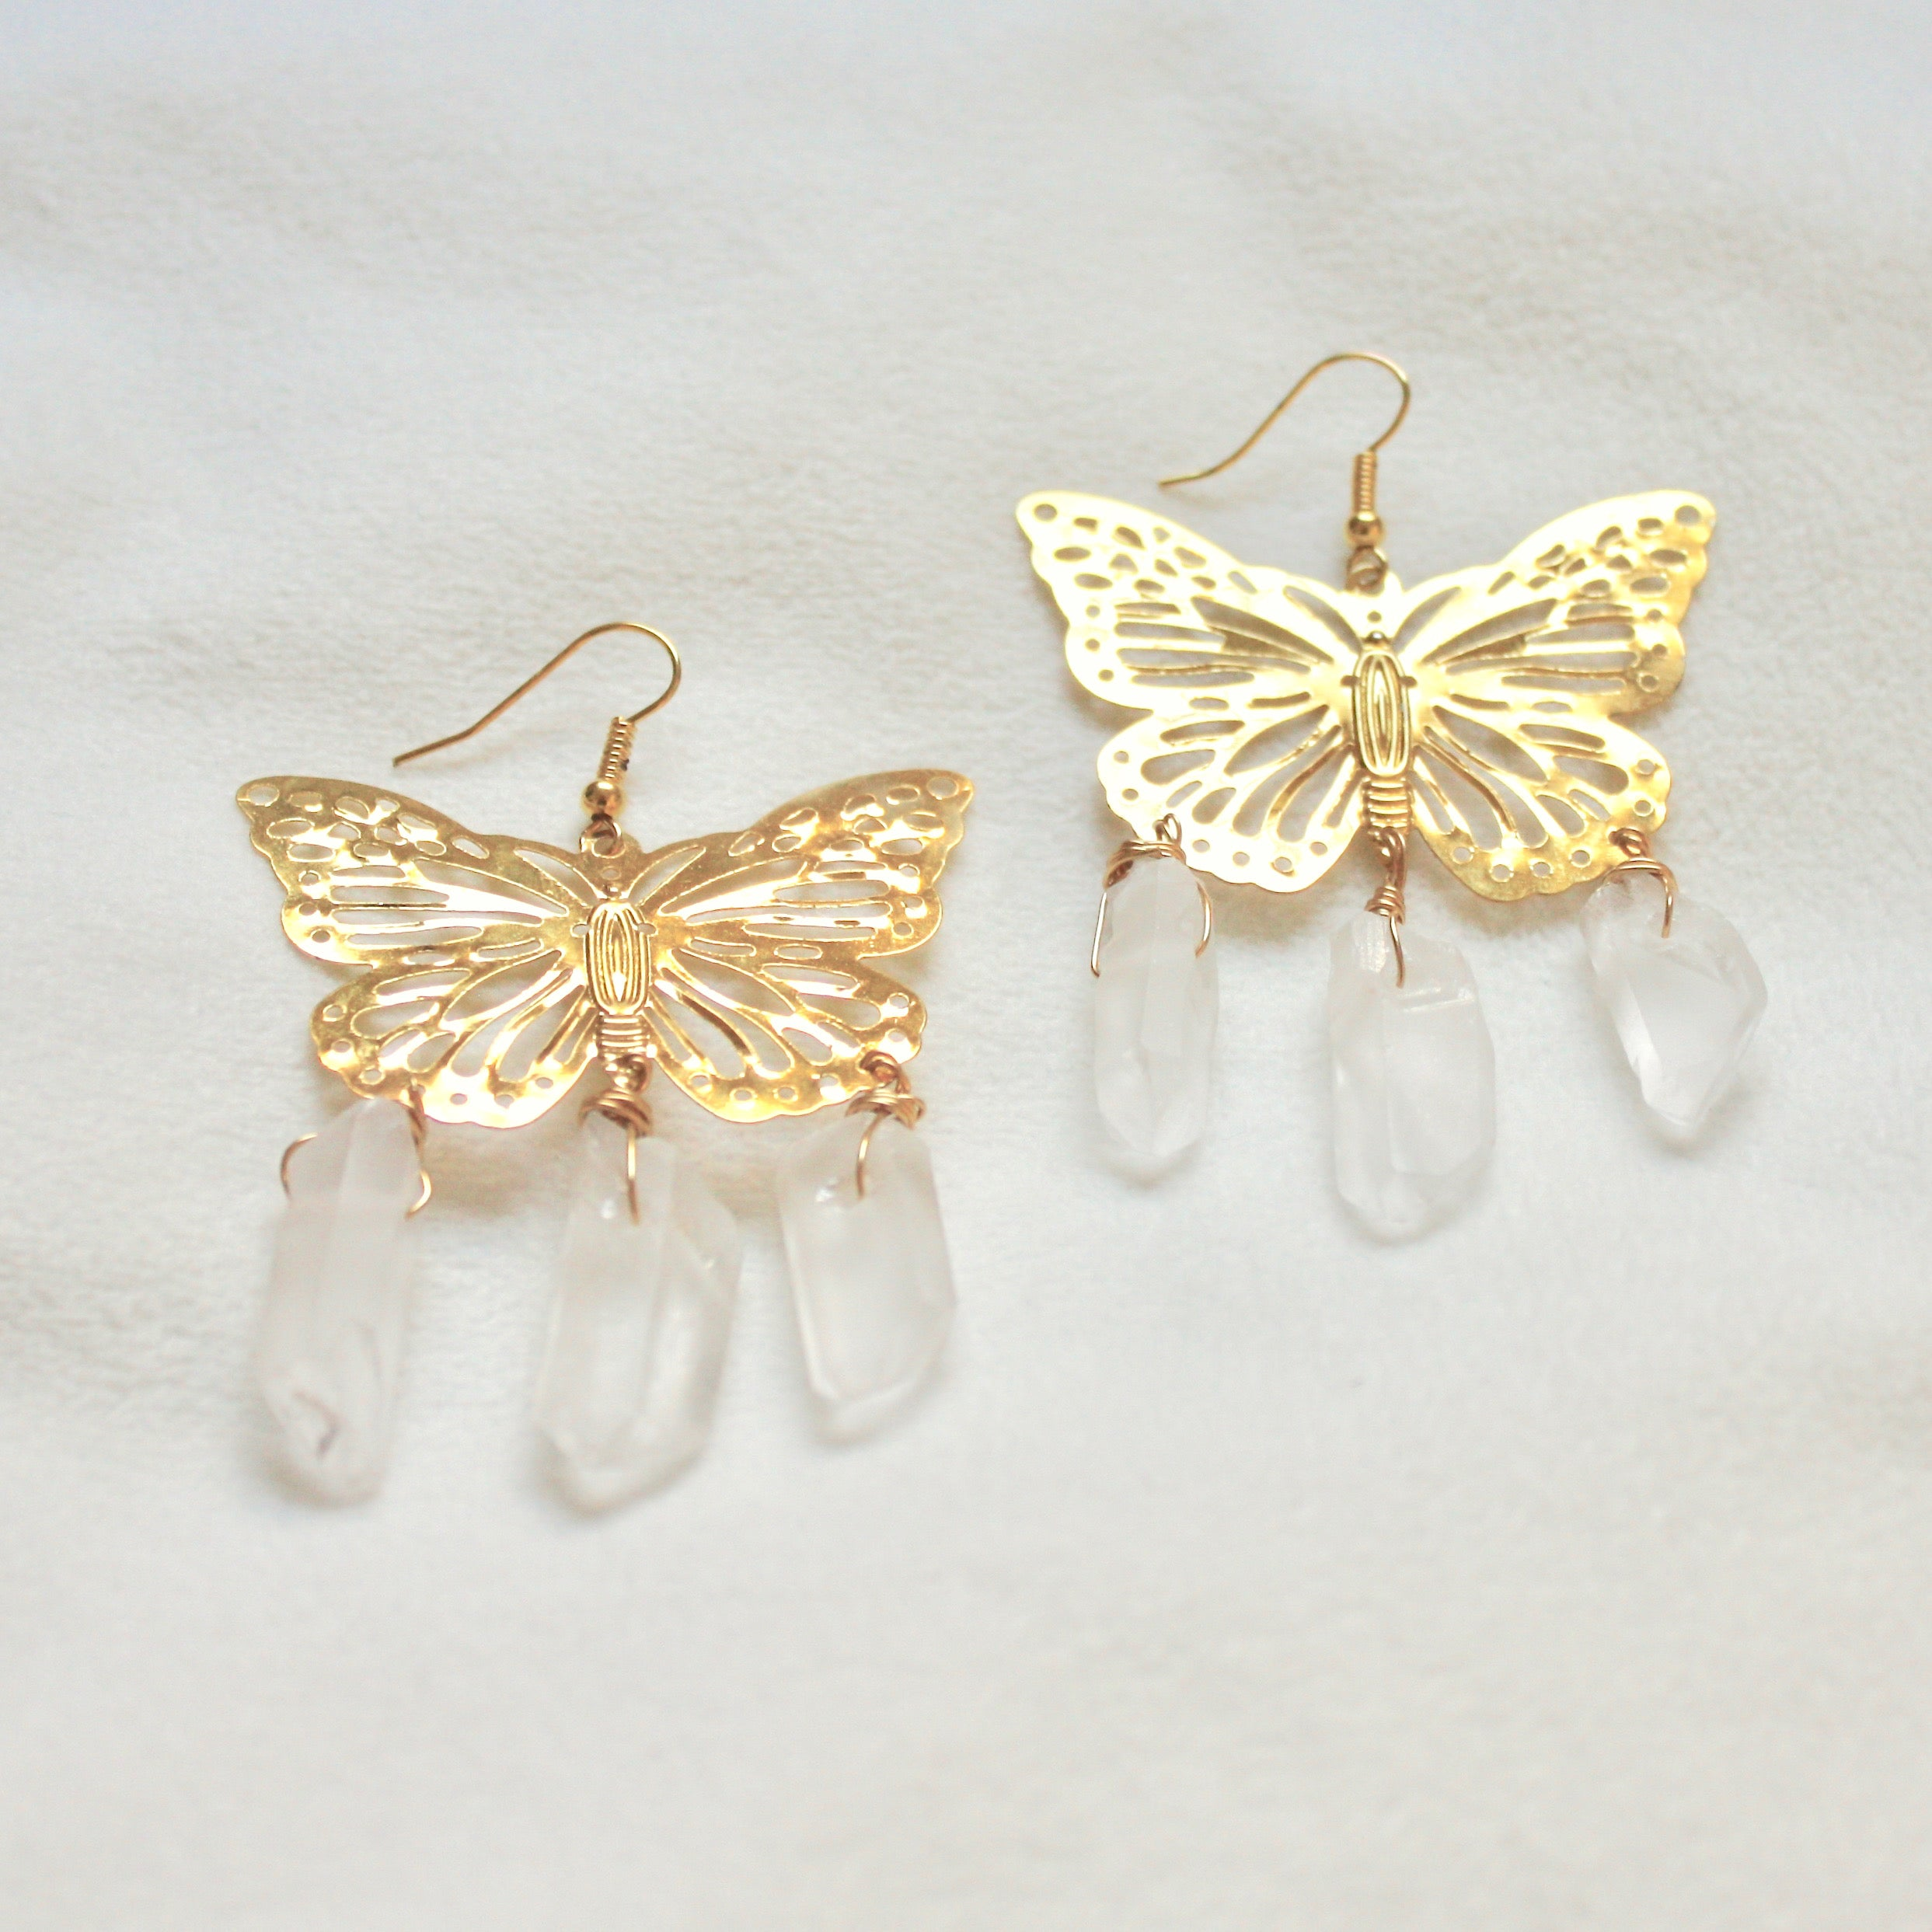 Forget Me Not Earrings in Gold